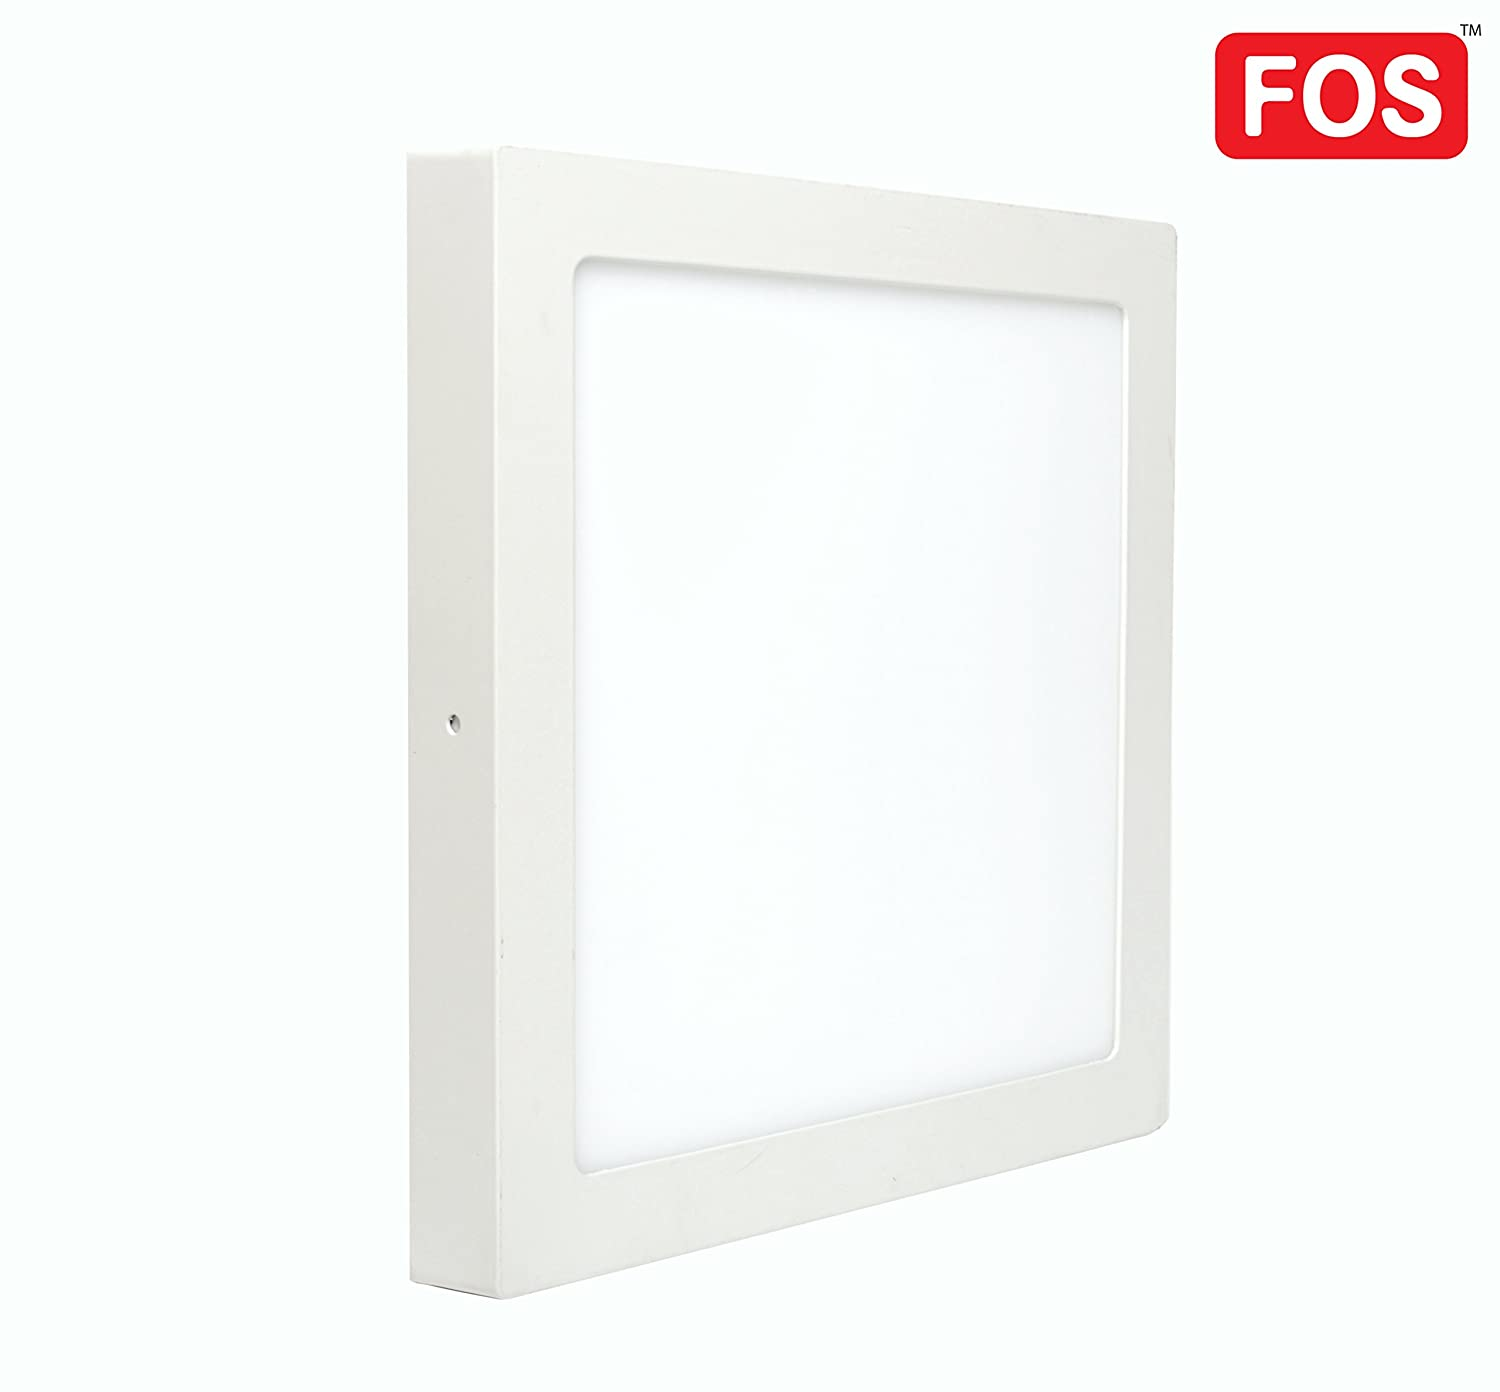 recessed chrome ceiling roomstylers light features efficient mount or square flush clear energy philips photo contempra a white and finish brushed aluminum replacement glass covers fixture